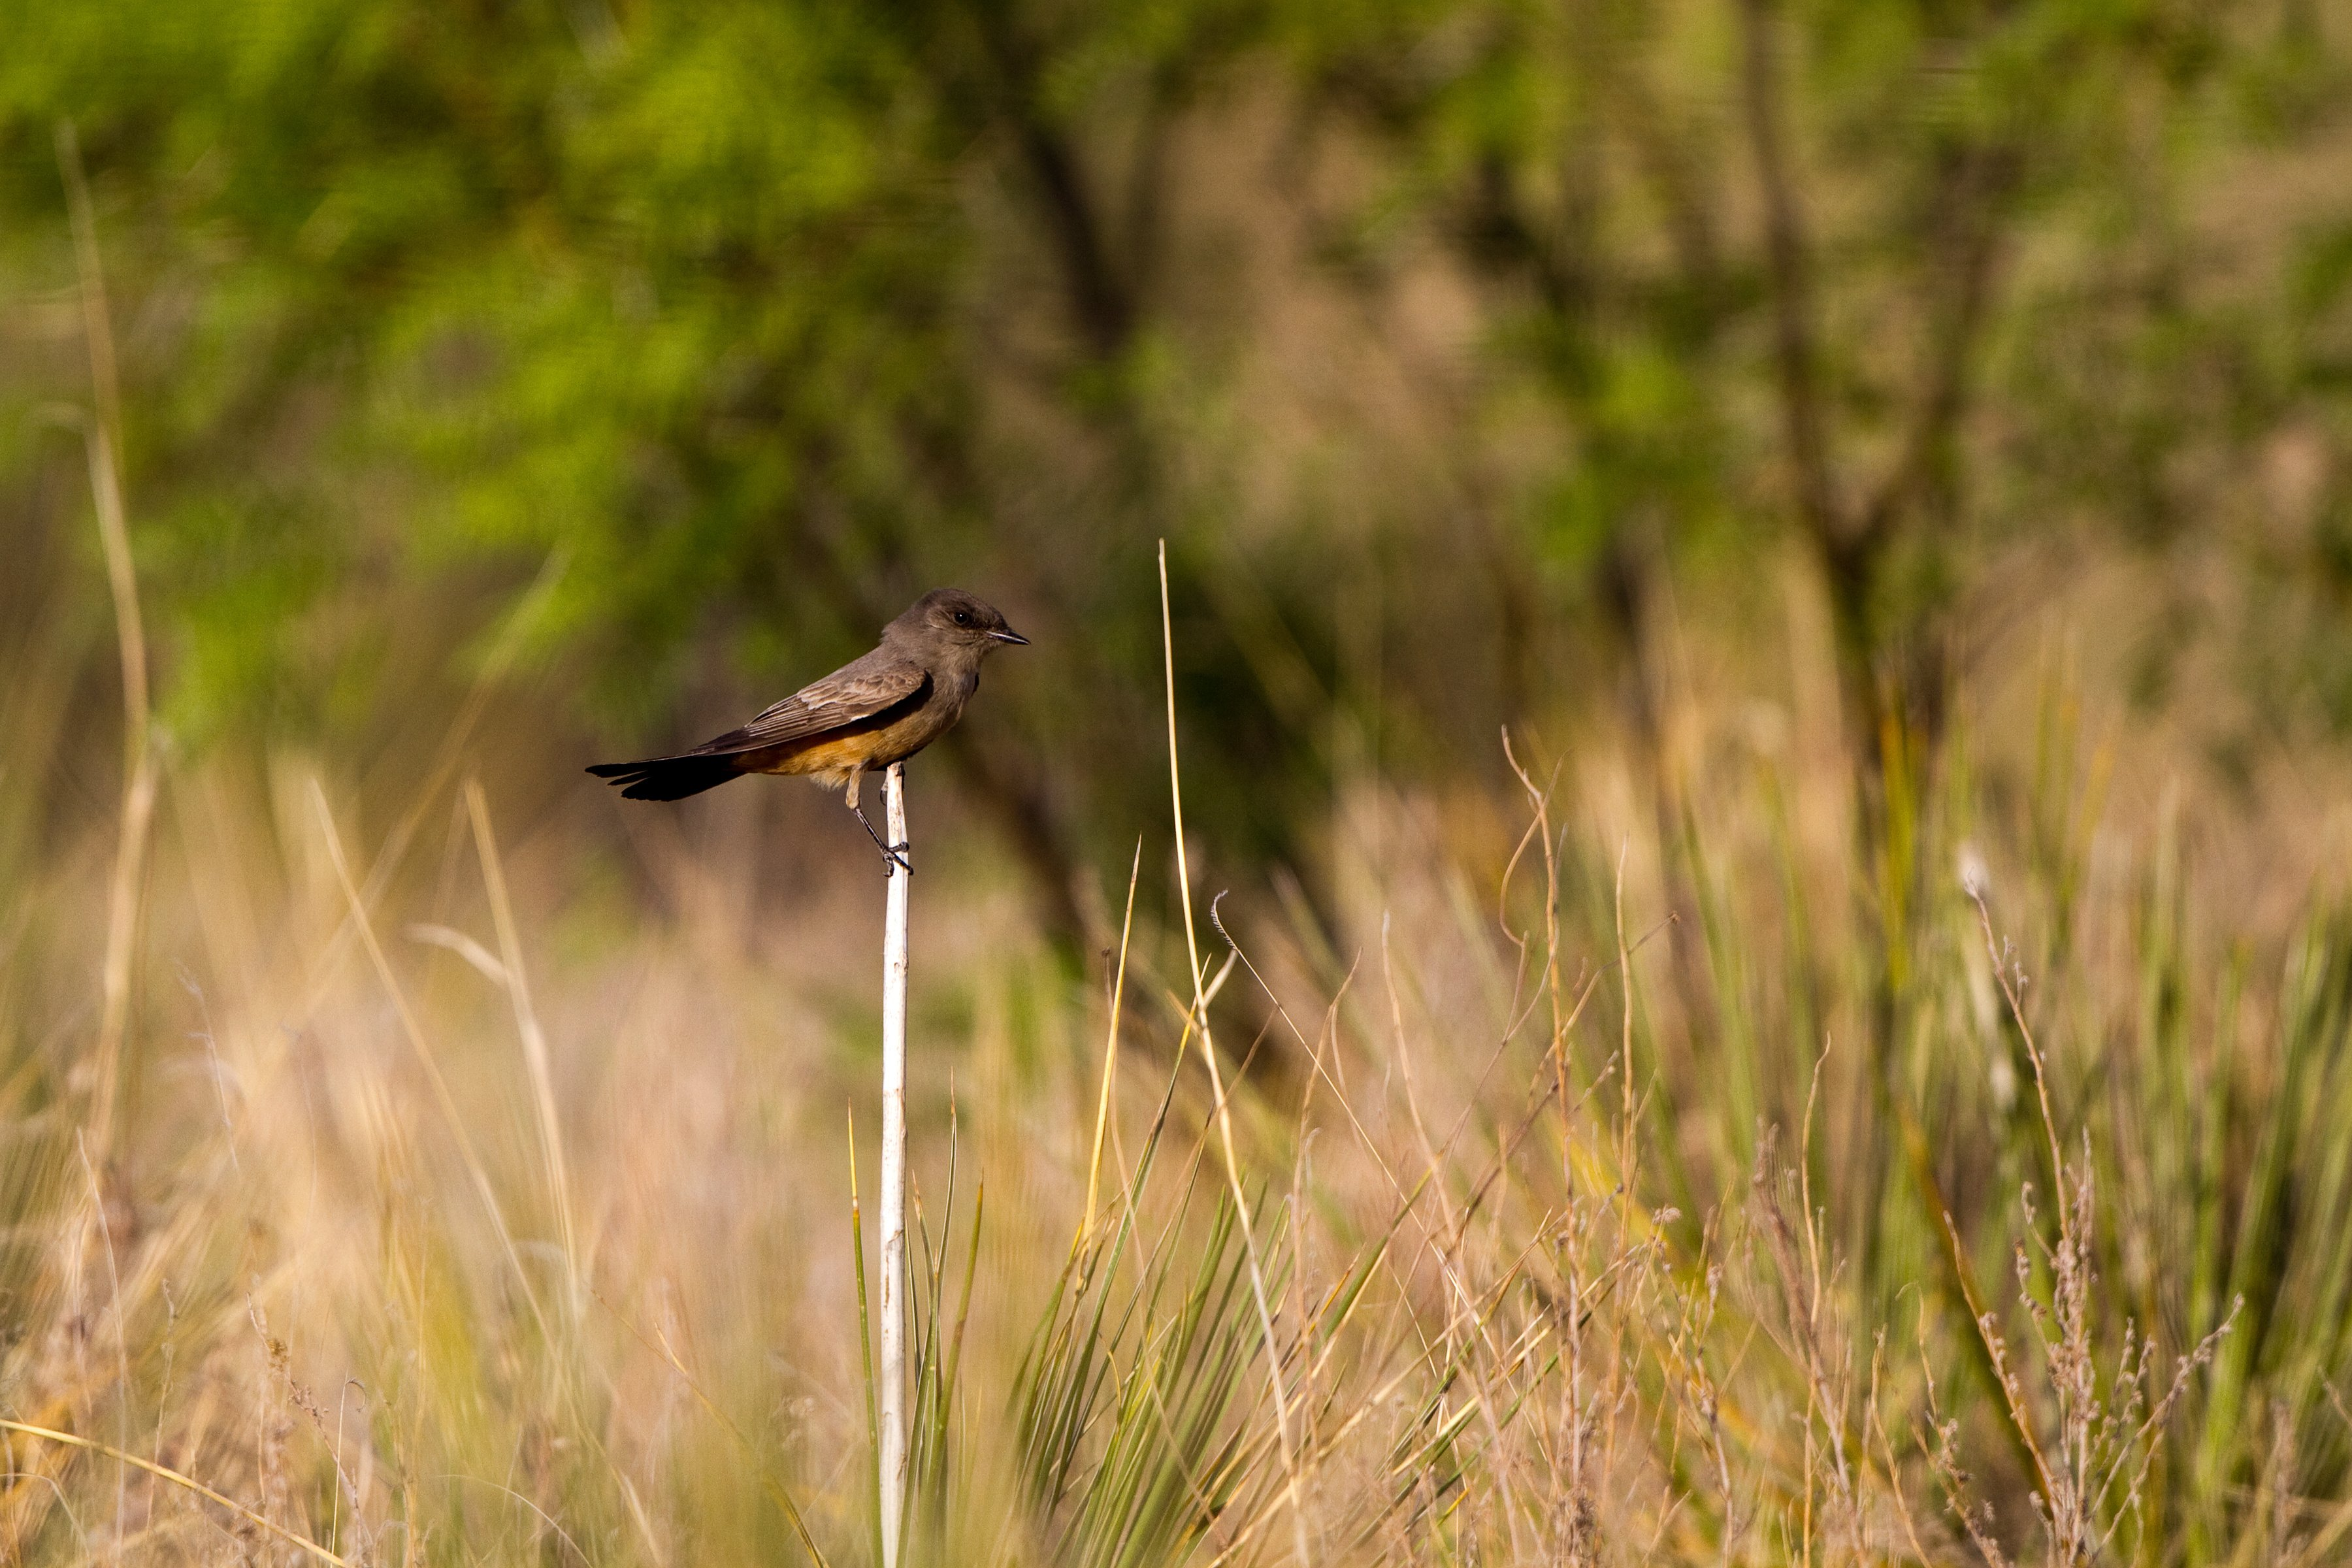 native grasses and Say's Phoebe bird in Texas Blackland Prairie